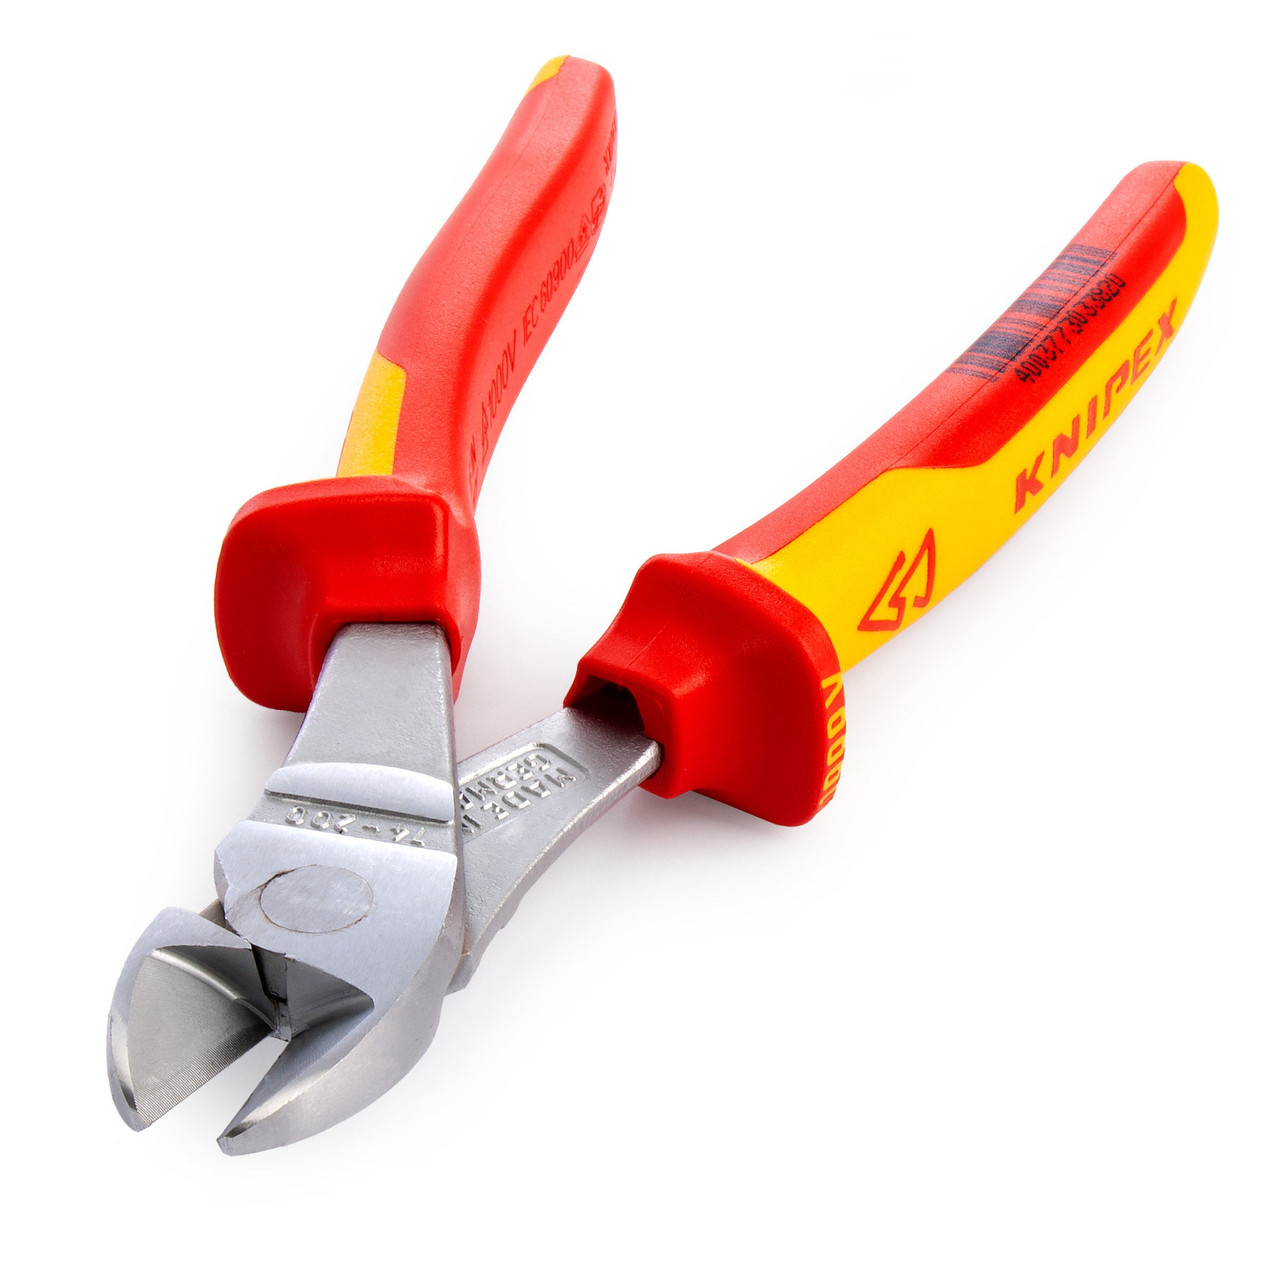 Knipex 180mm High Leverage Diagonal Side Cutters 1000V VDE Insulated 74 06 180